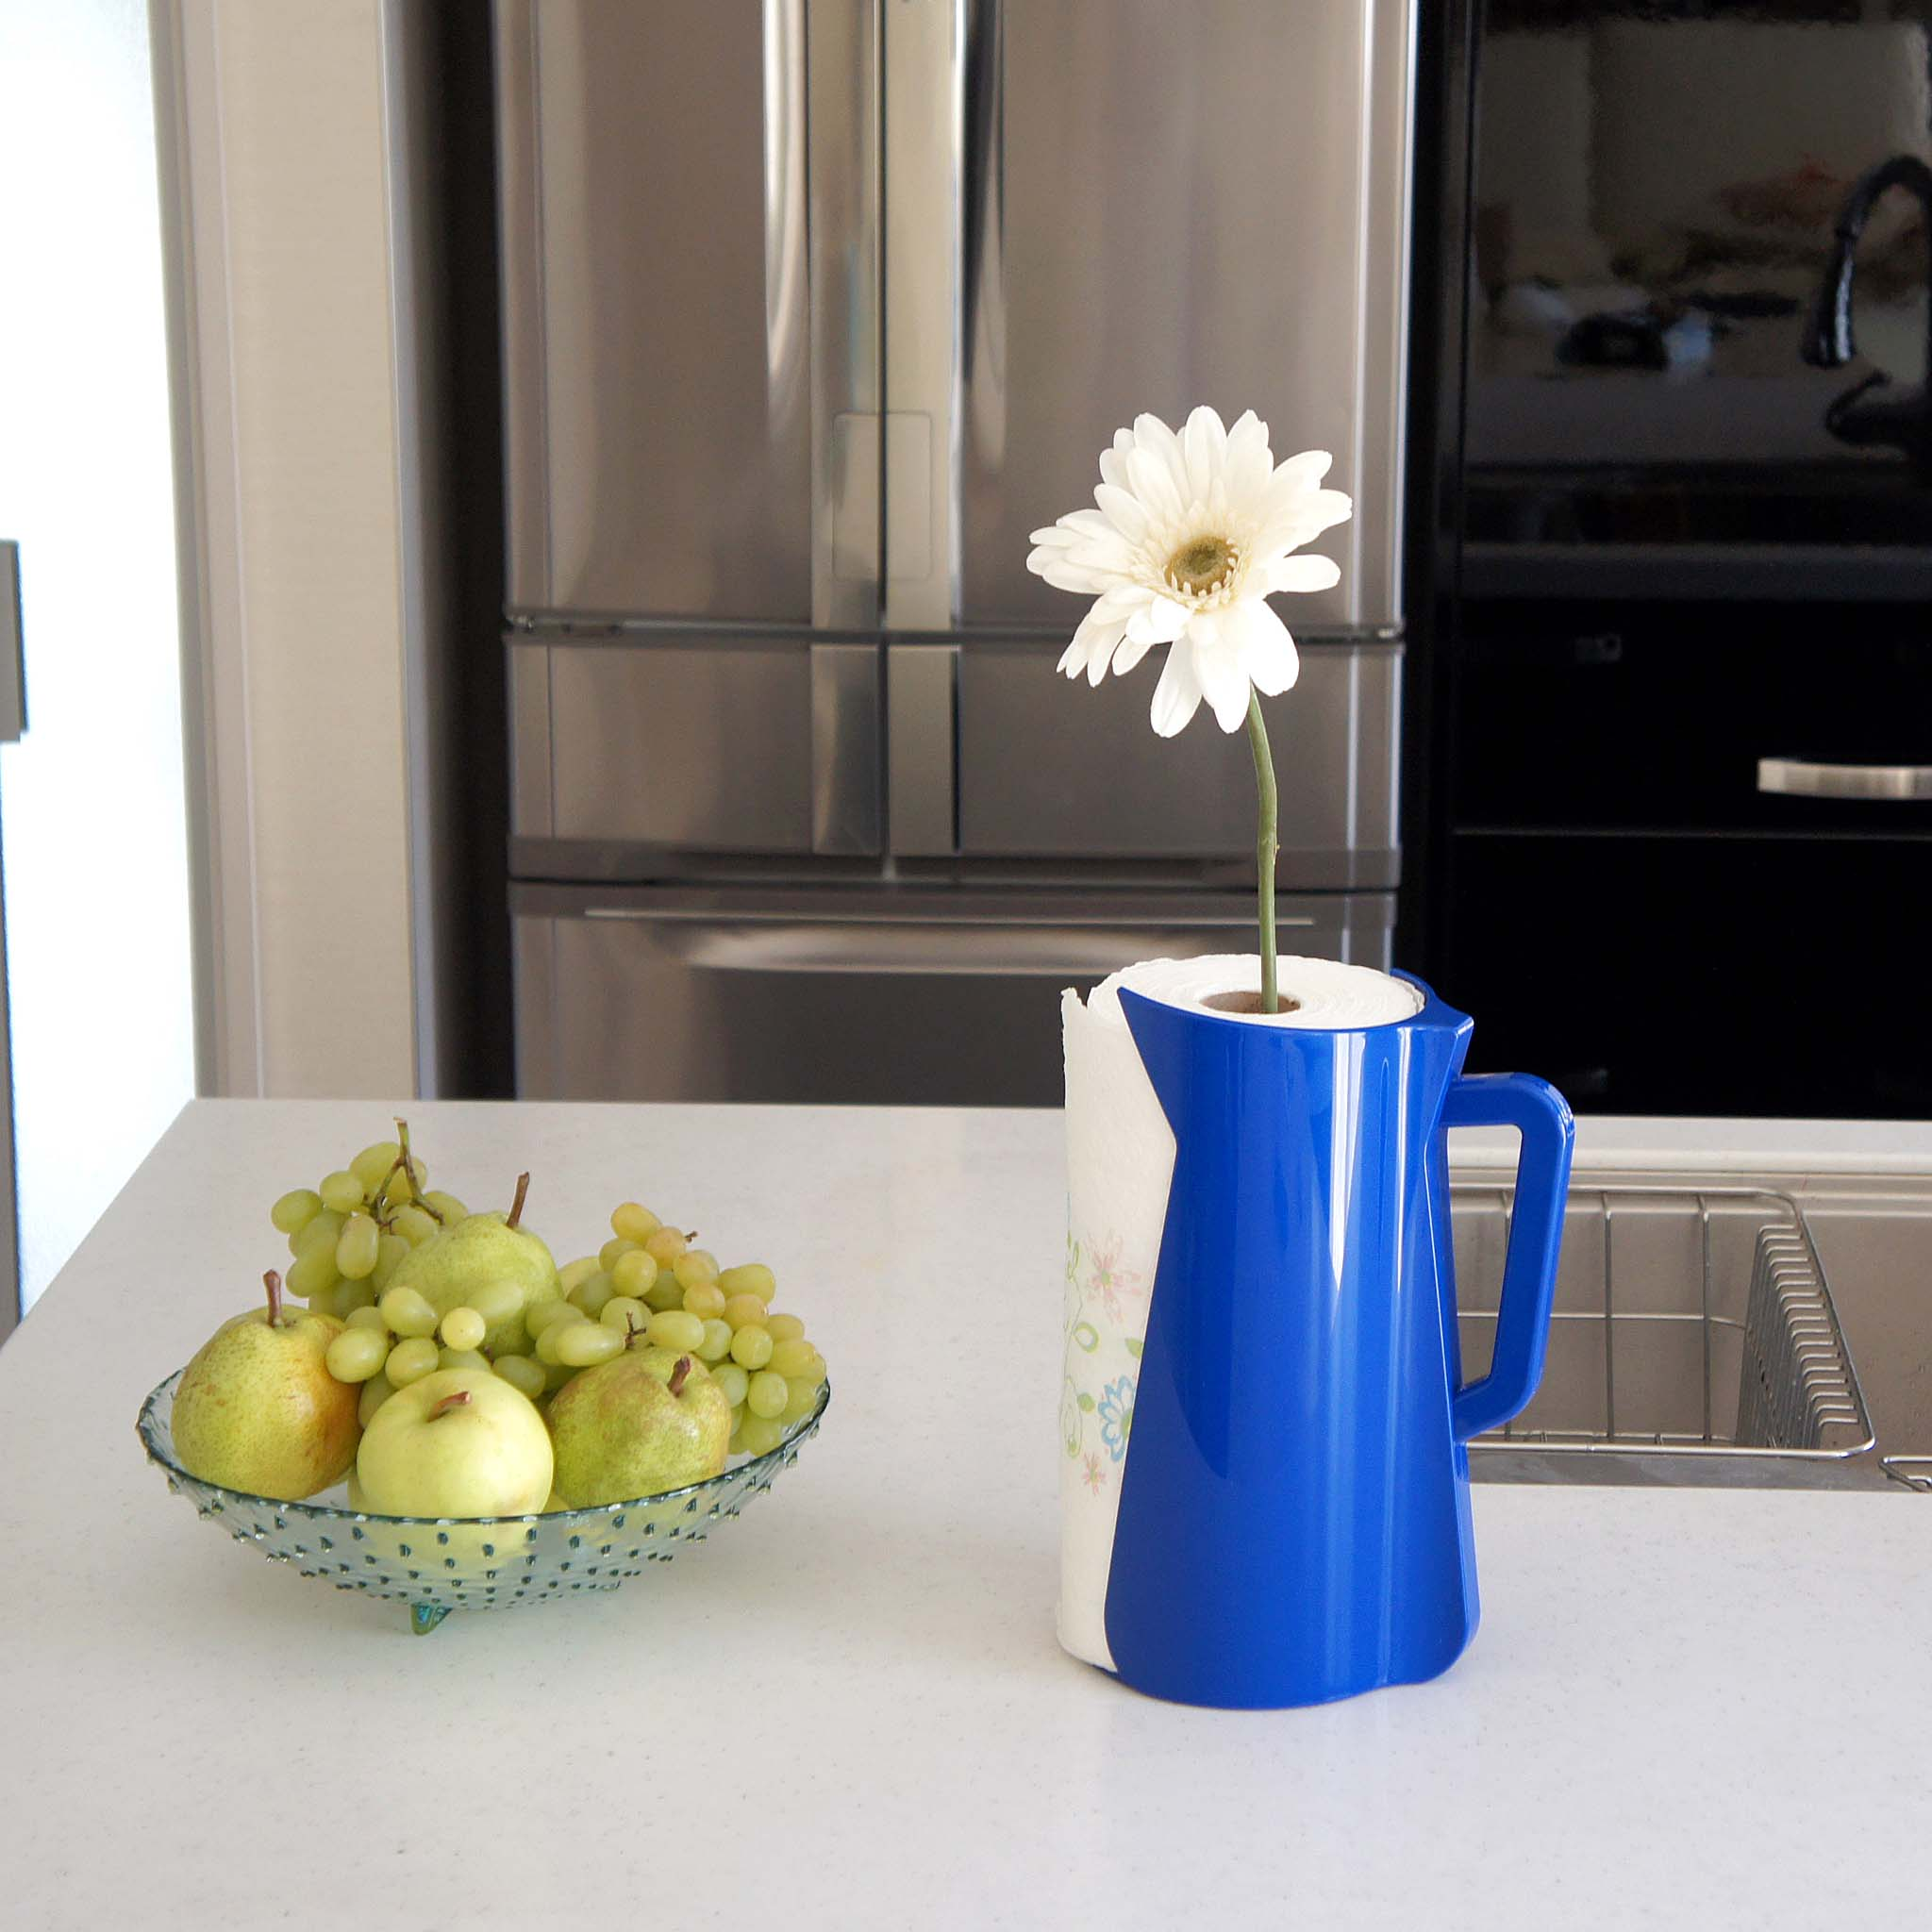 A sleek and stylish paper towel holder to brighten up the kitchen.